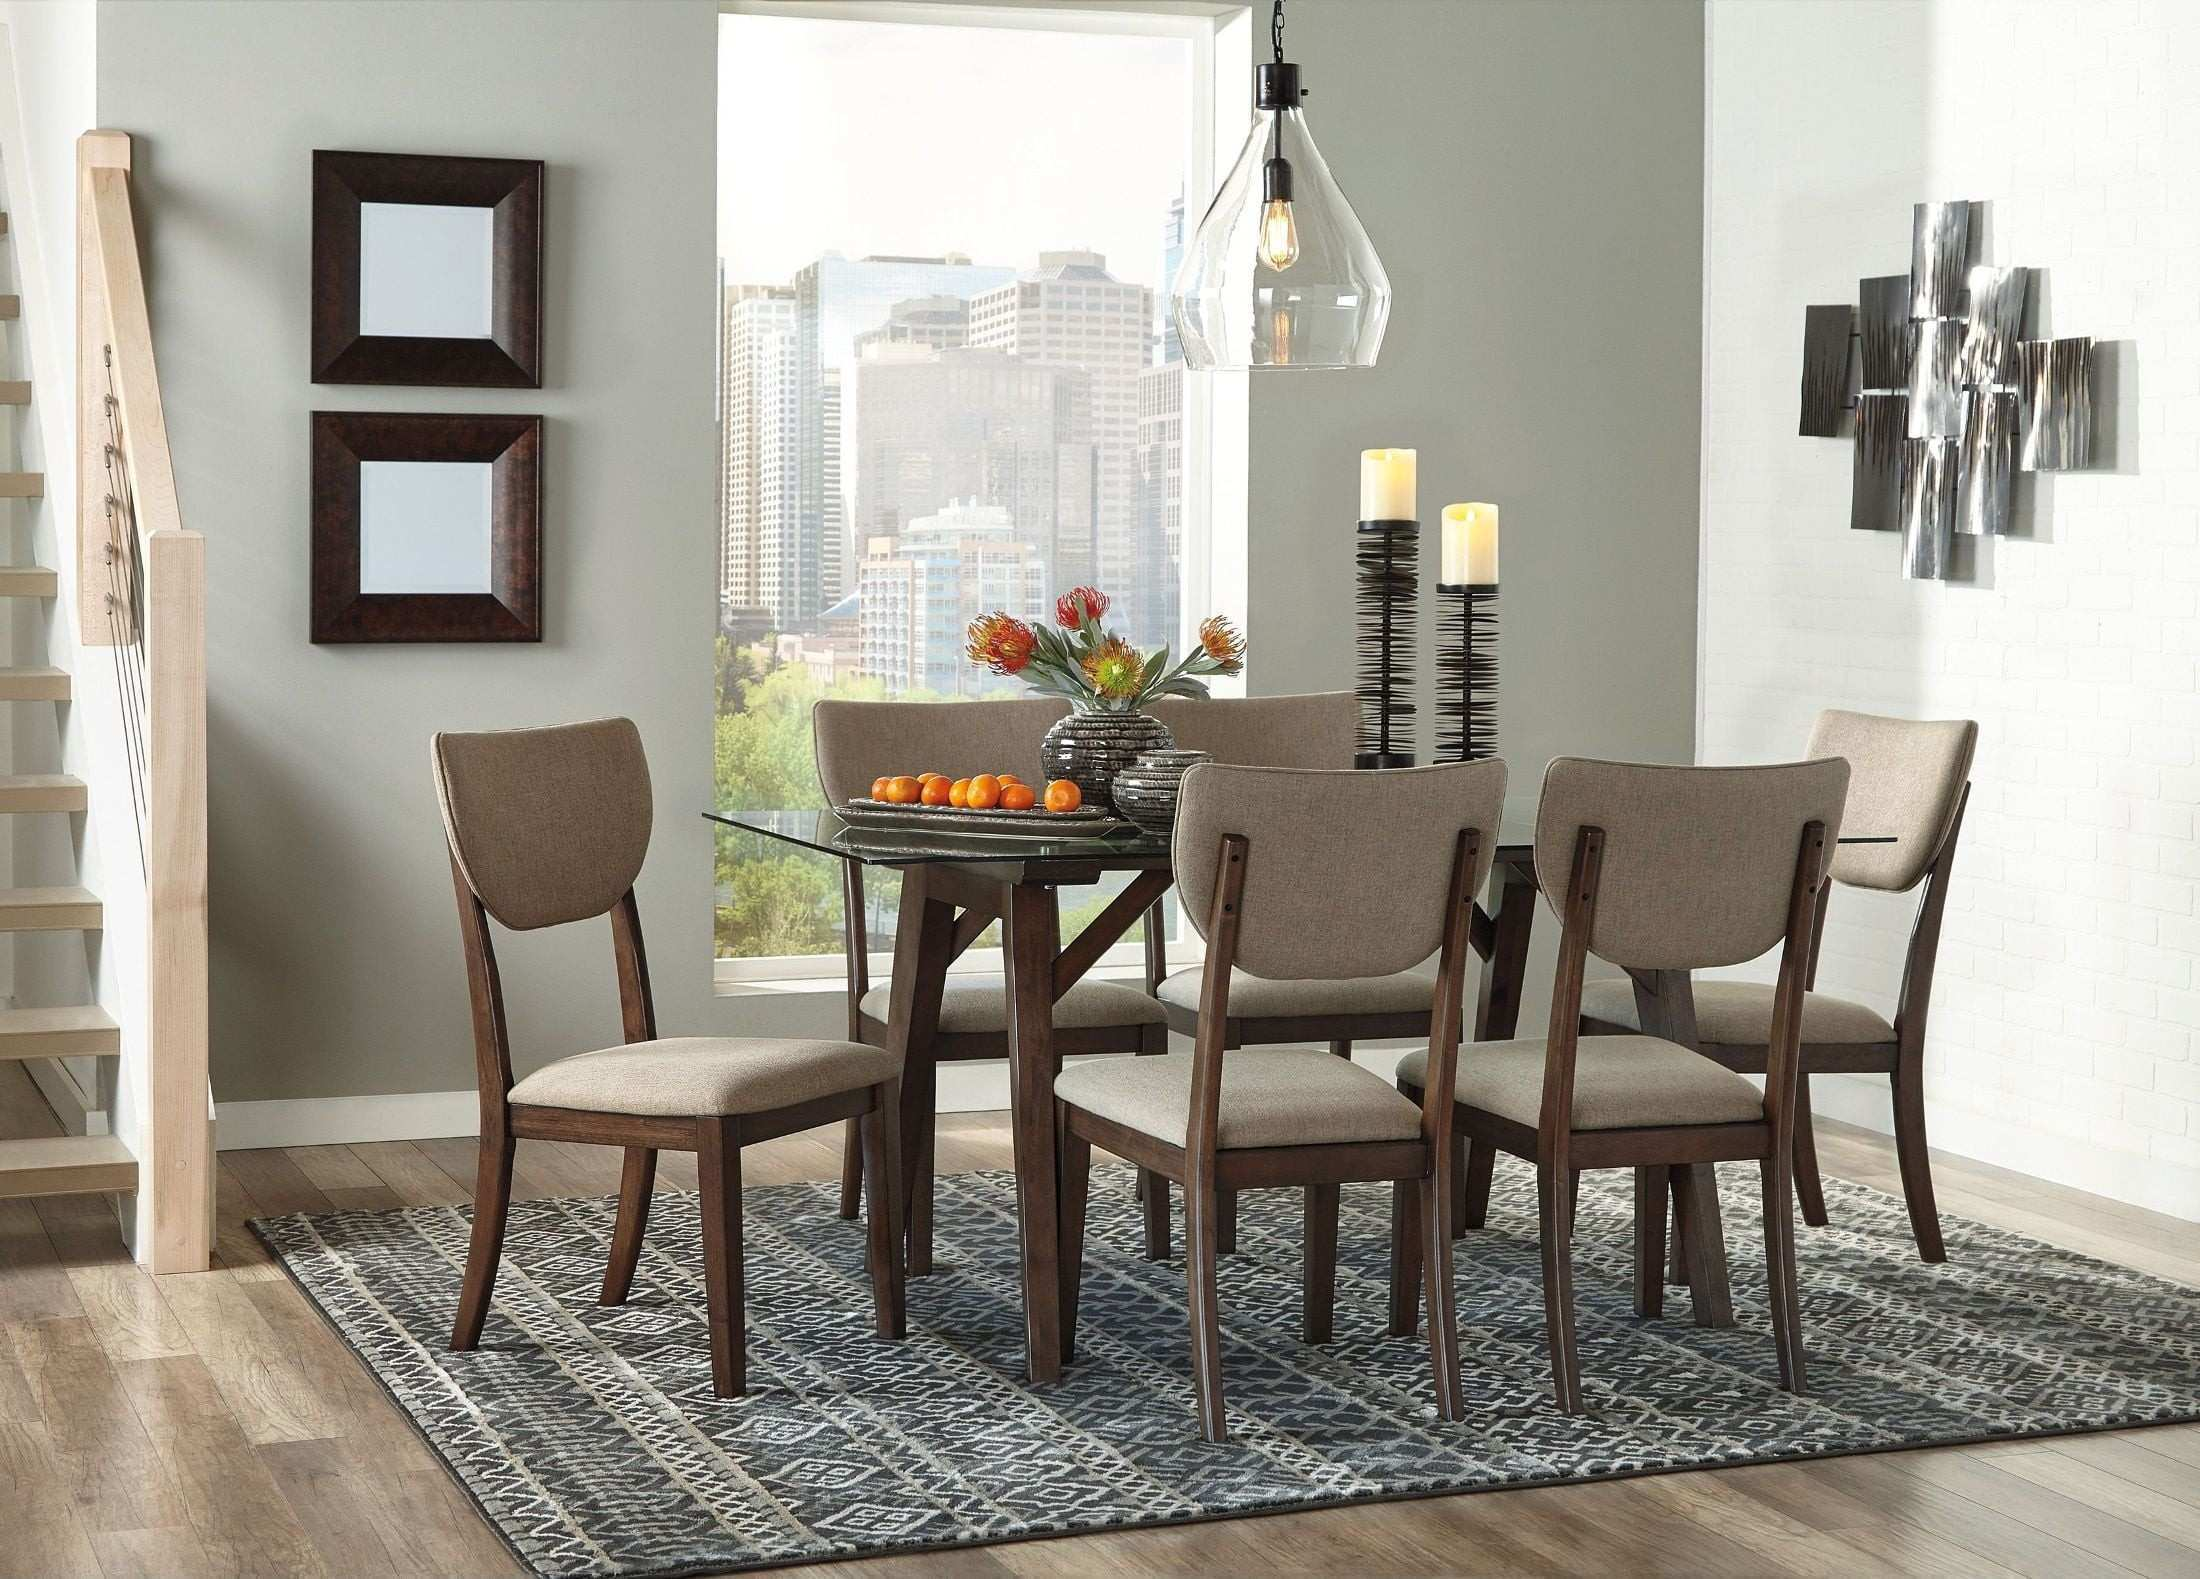 Joshton Brown Rectangular Dining Room Set from Ashley